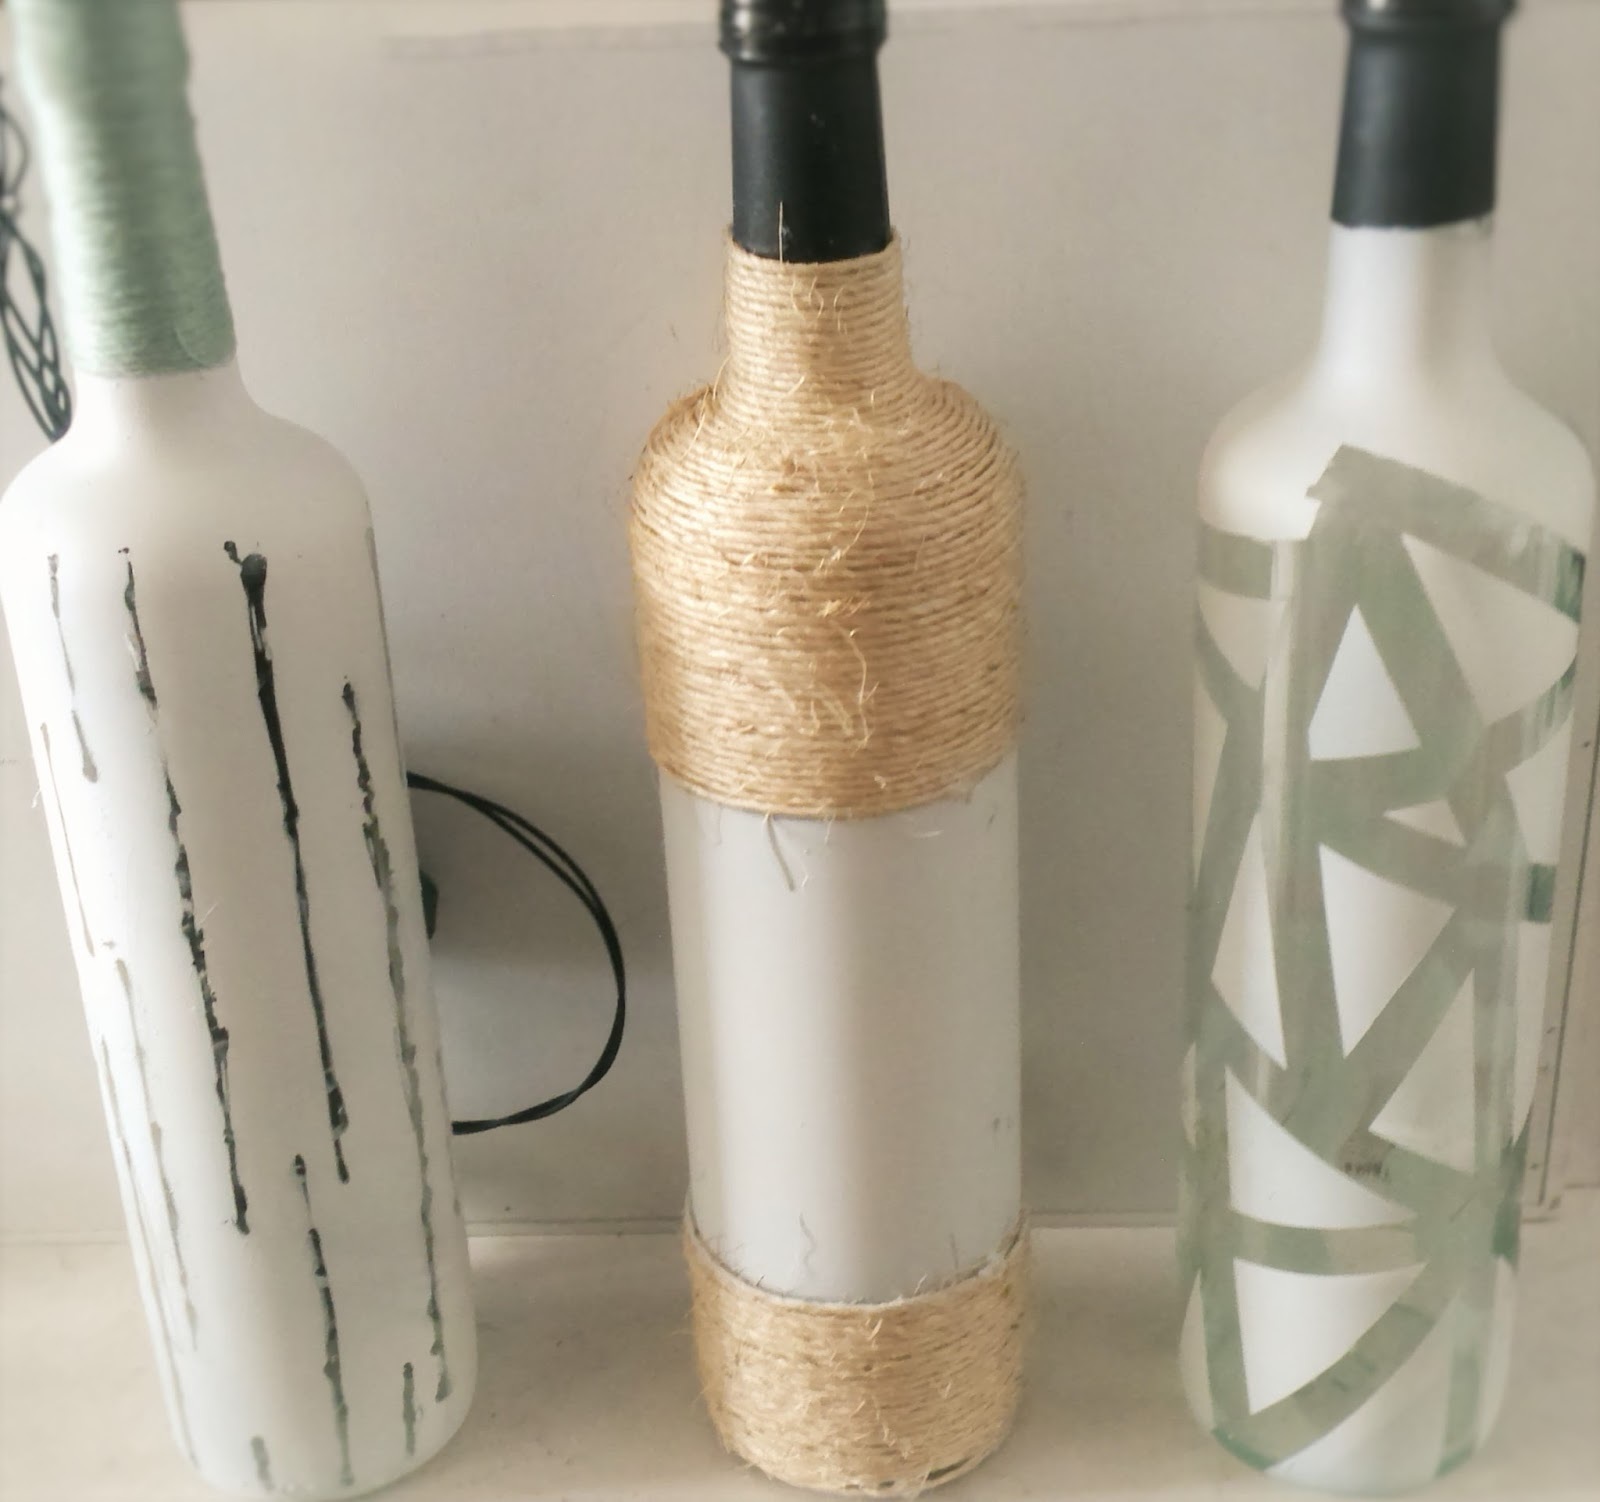 3 Ideas Faciles Para Decorar Botellas Diy Con Valen - Decorar-botellas